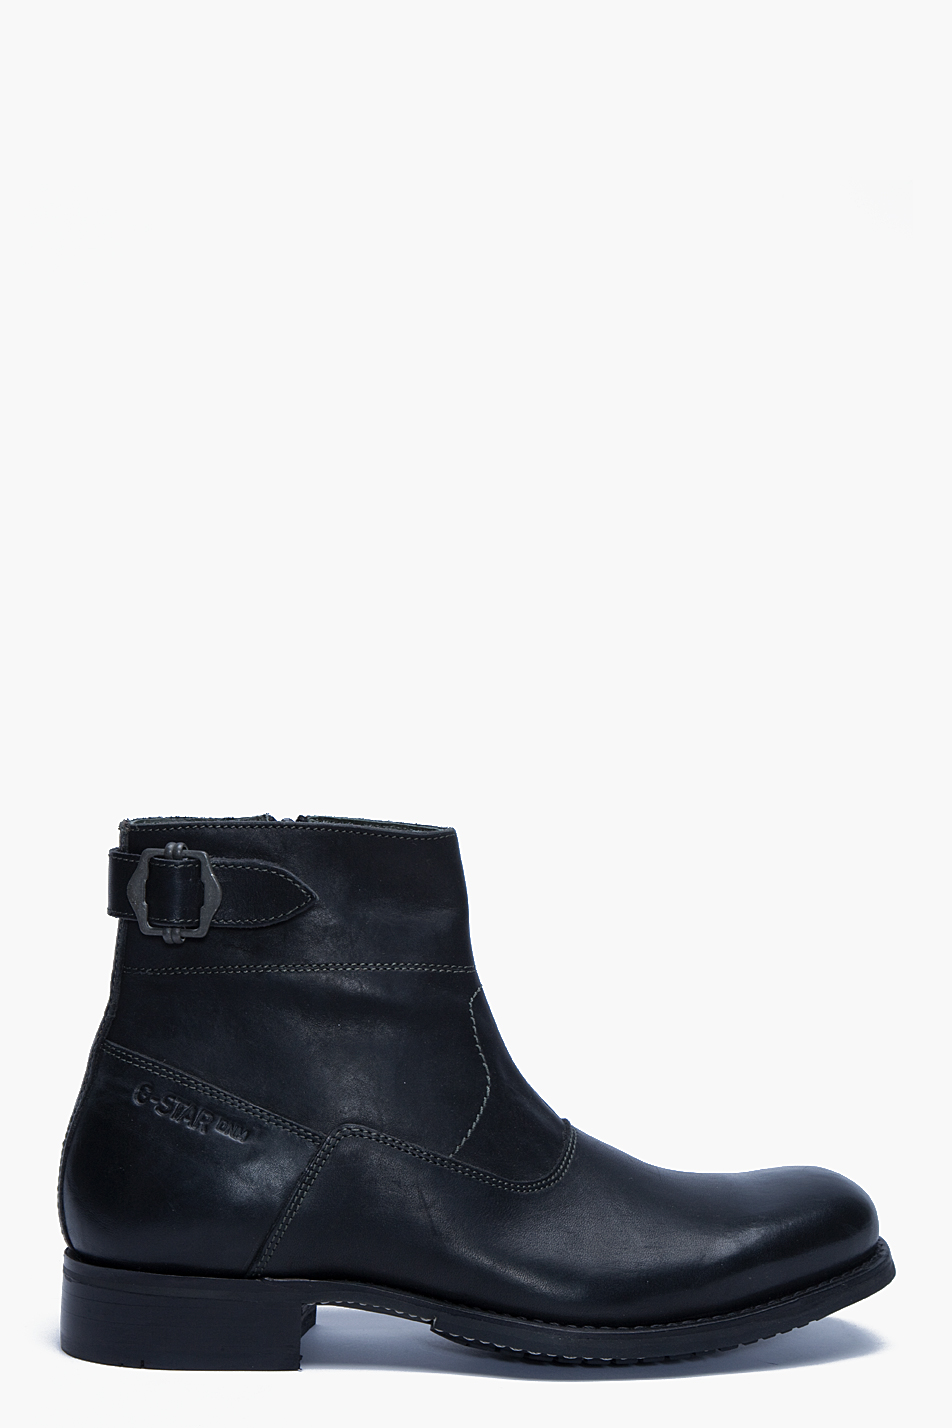 g star raw m i mission ii boots in black for men lyst. Black Bedroom Furniture Sets. Home Design Ideas